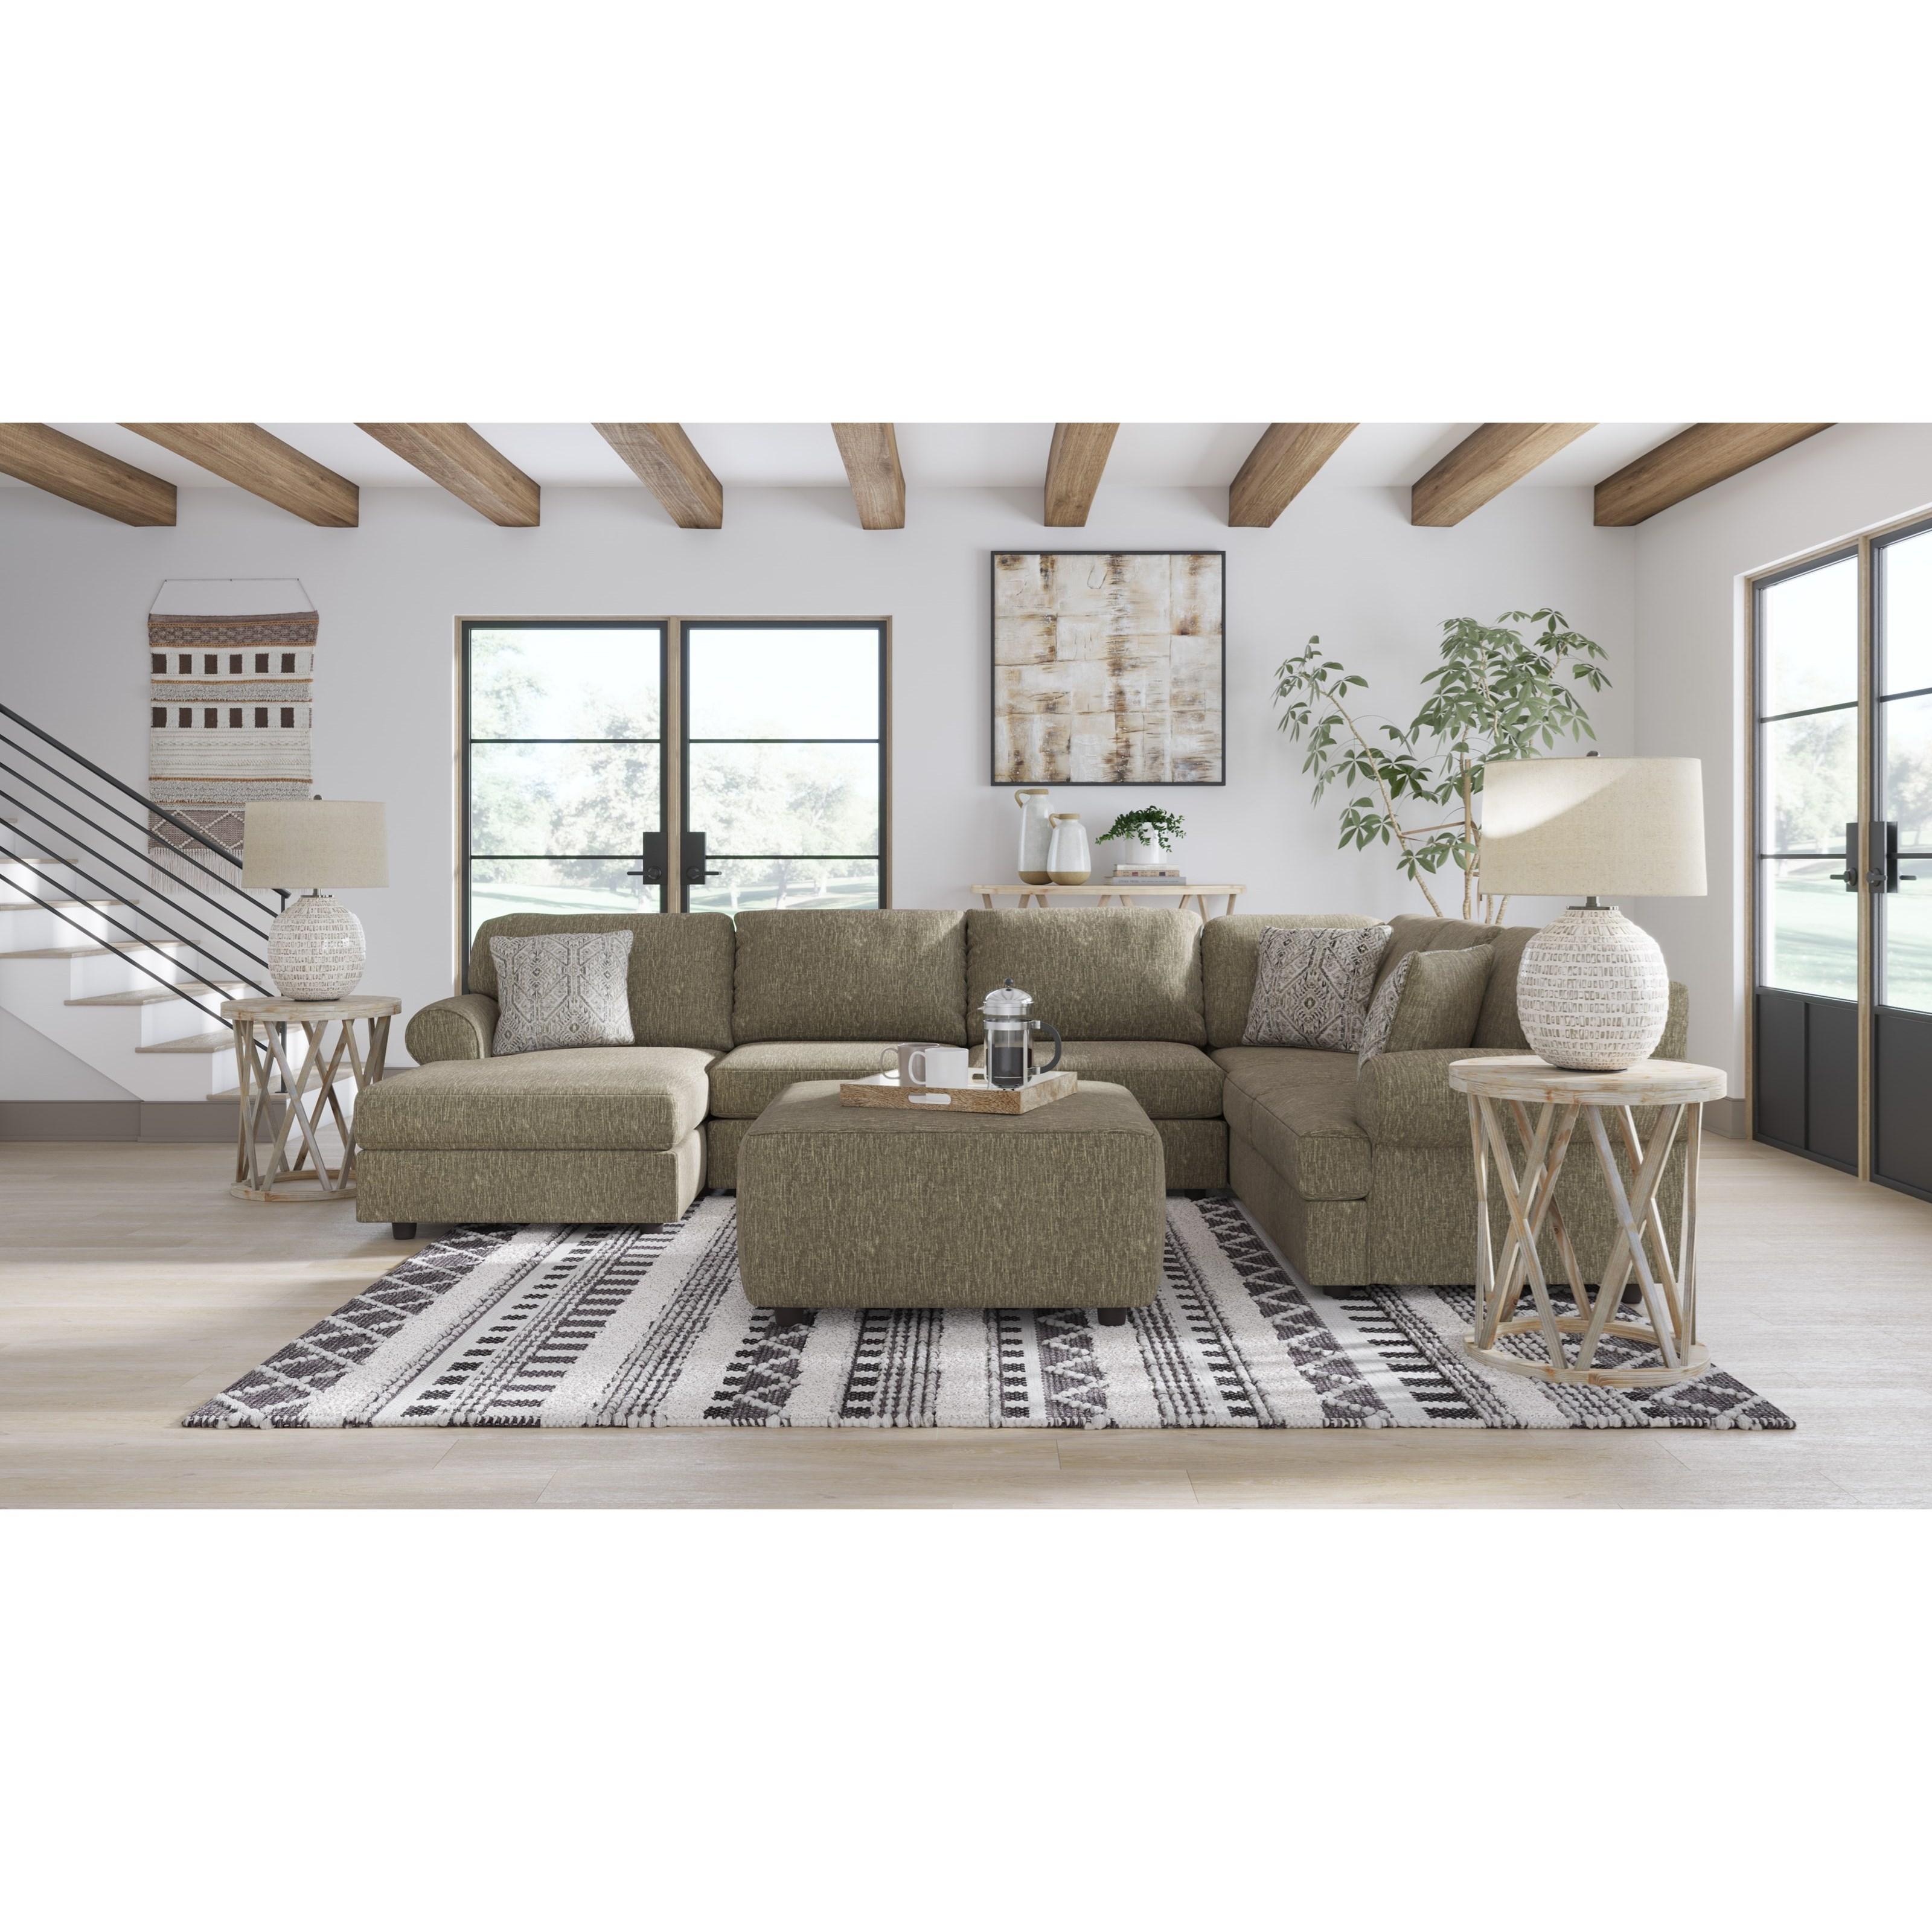 Hoylake Living Room Group by Signature Design by Ashley at Northeast Factory Direct